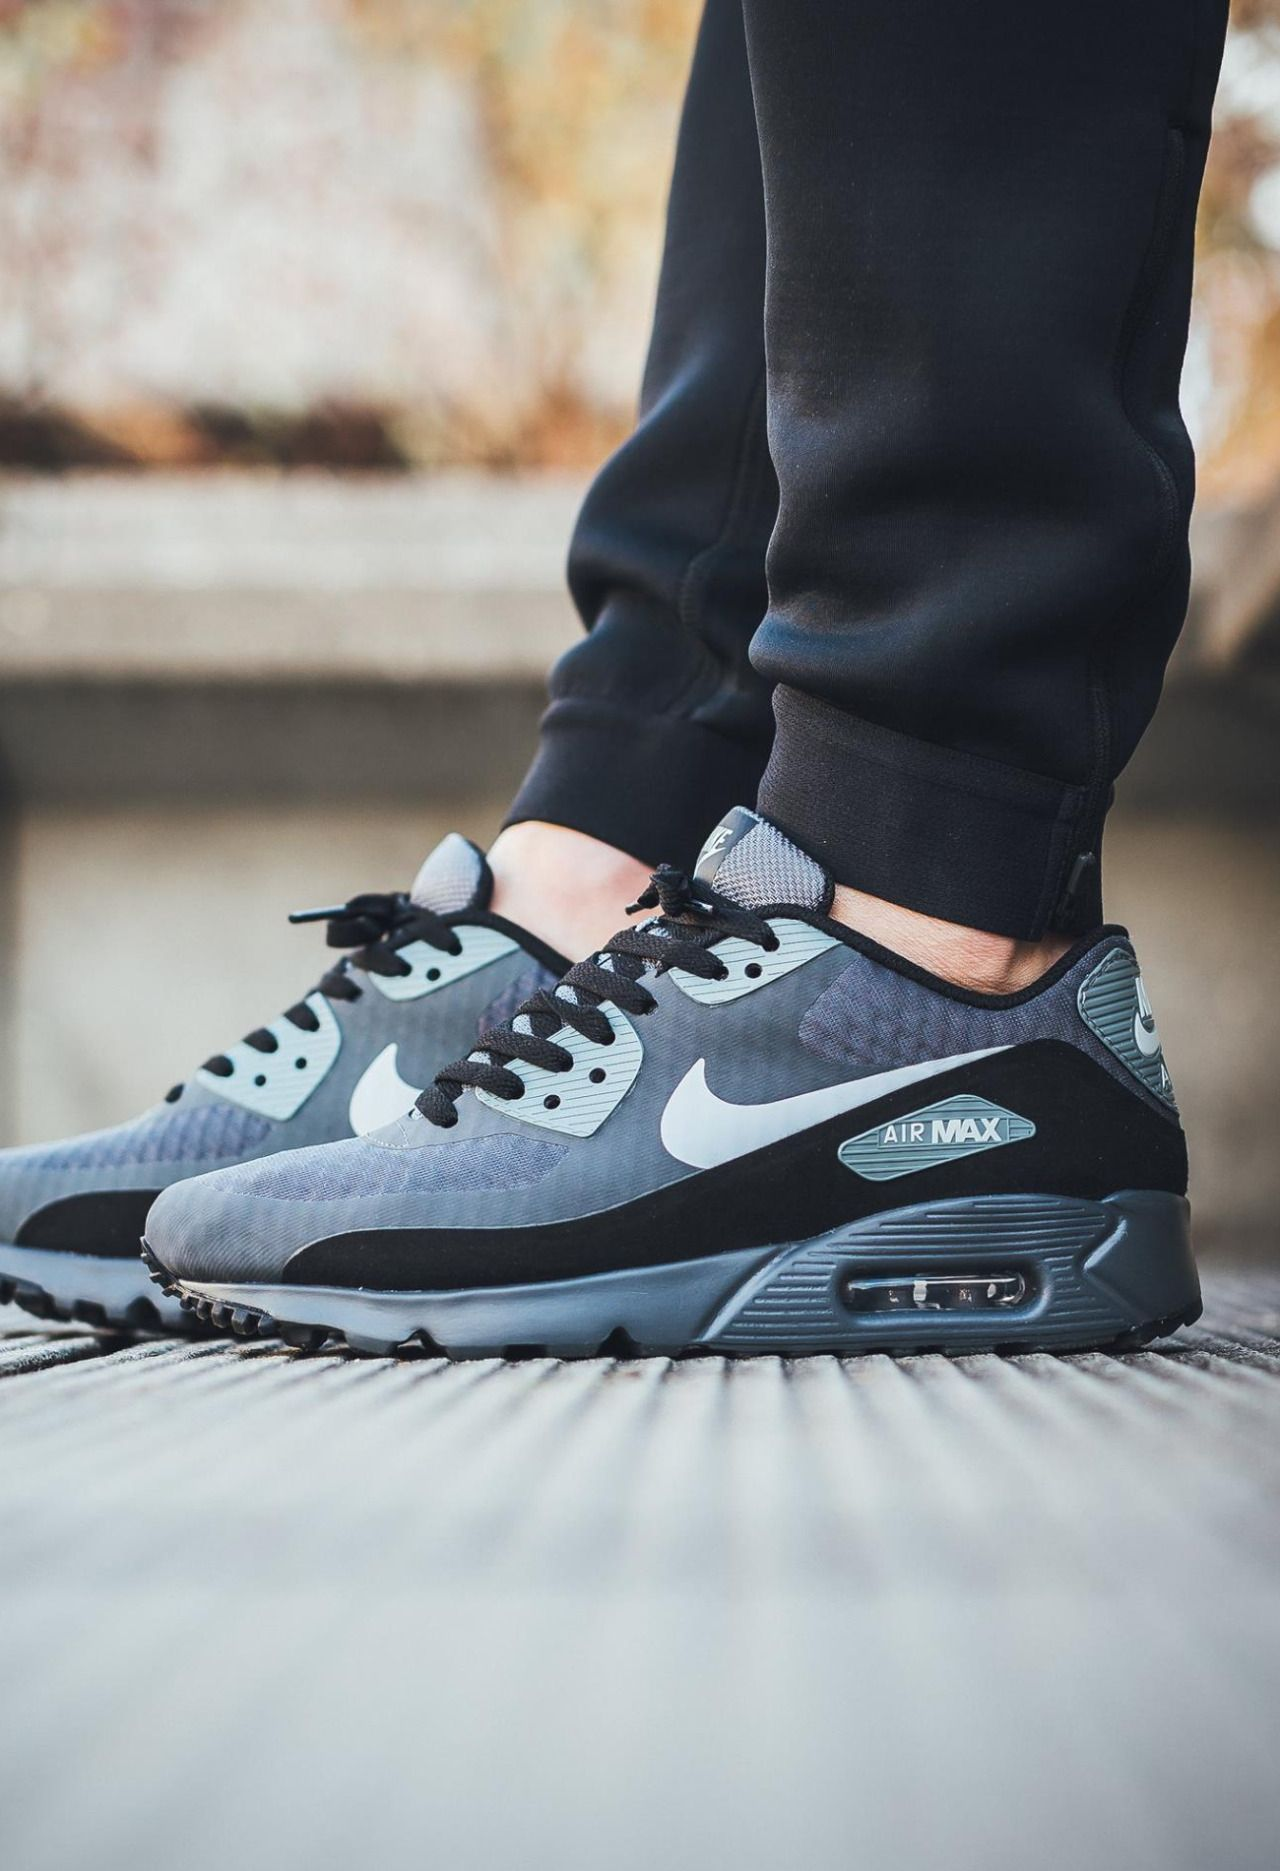 Nike Air Max 90 Ultra Essential 'Dark GreyWolf Grey' | Nike